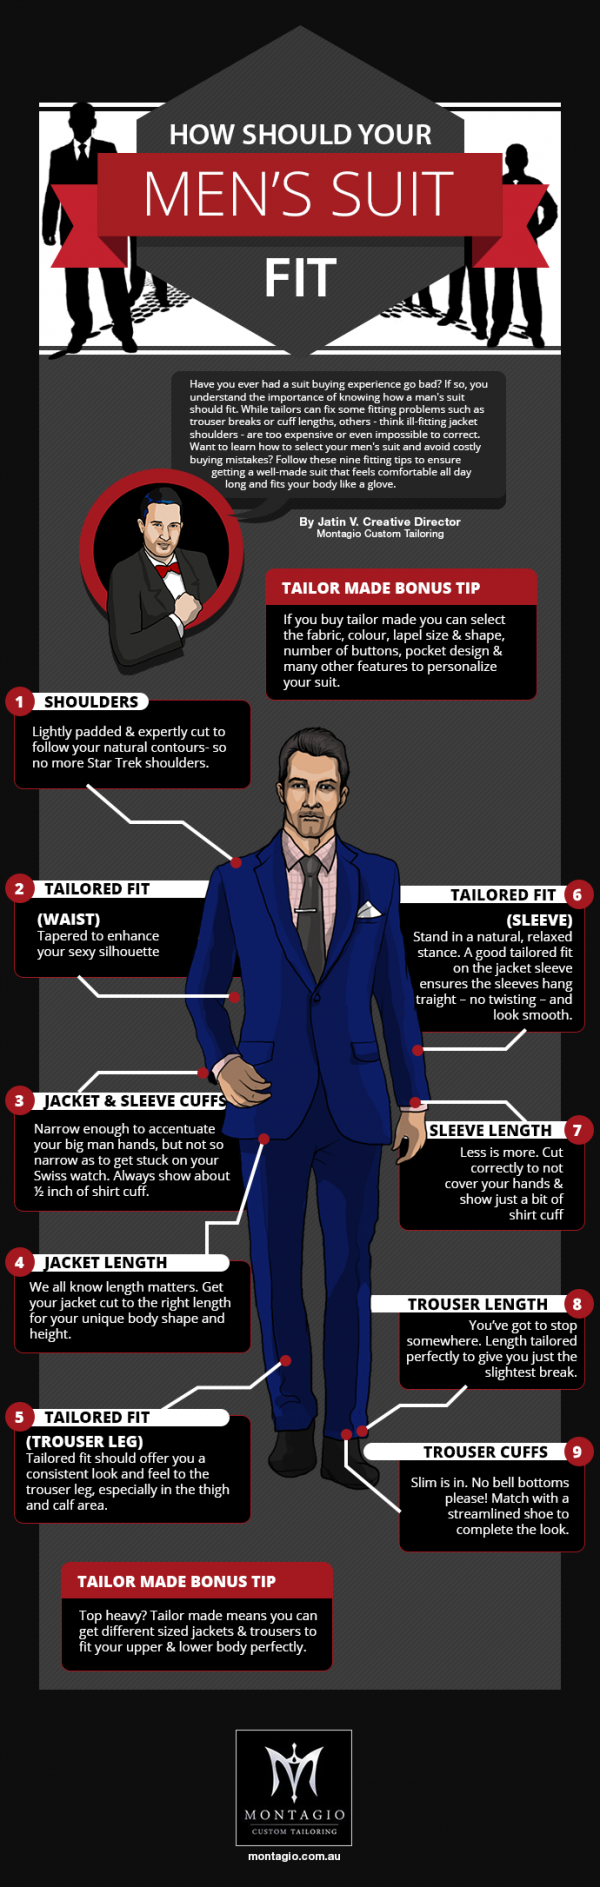 How_Should_Your_Mens_Suit_Fit